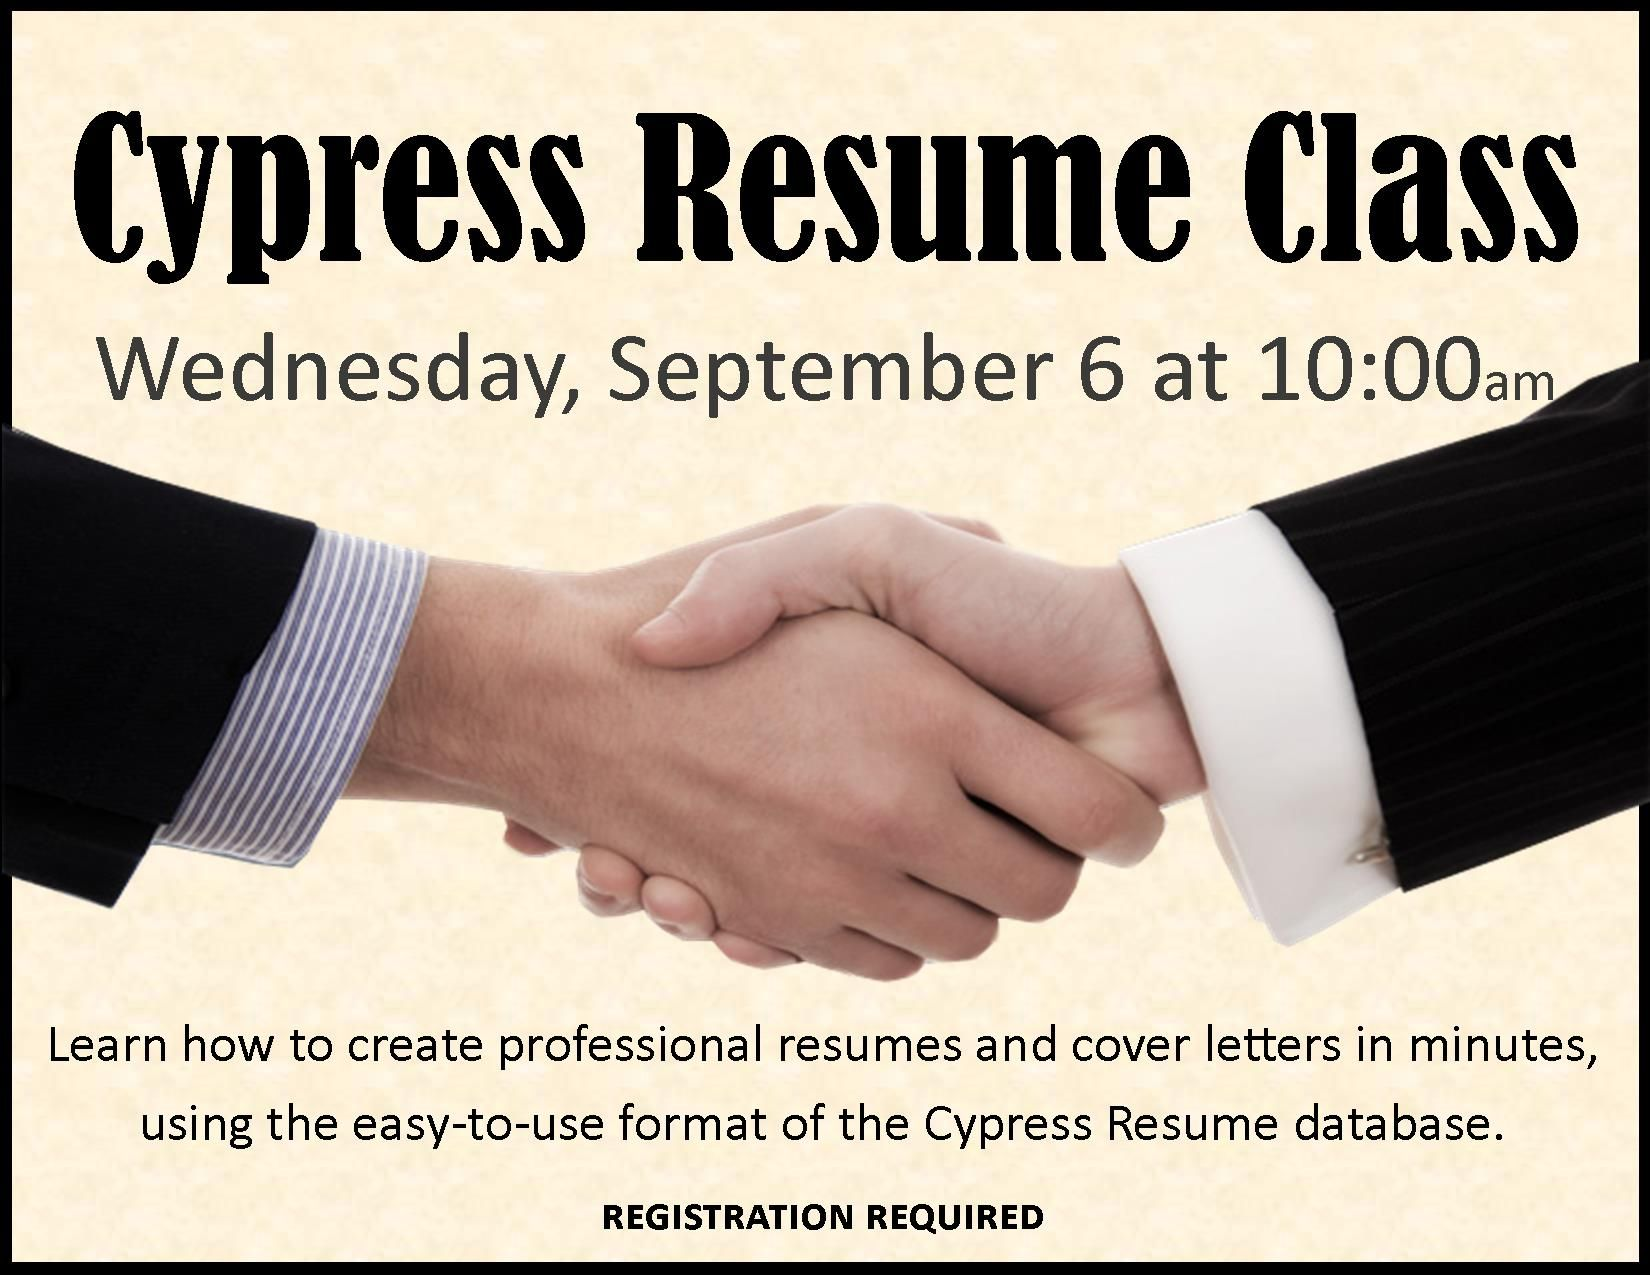 Cypress Resume | Cypress Resume Class Wednesday September 6 2017 10am